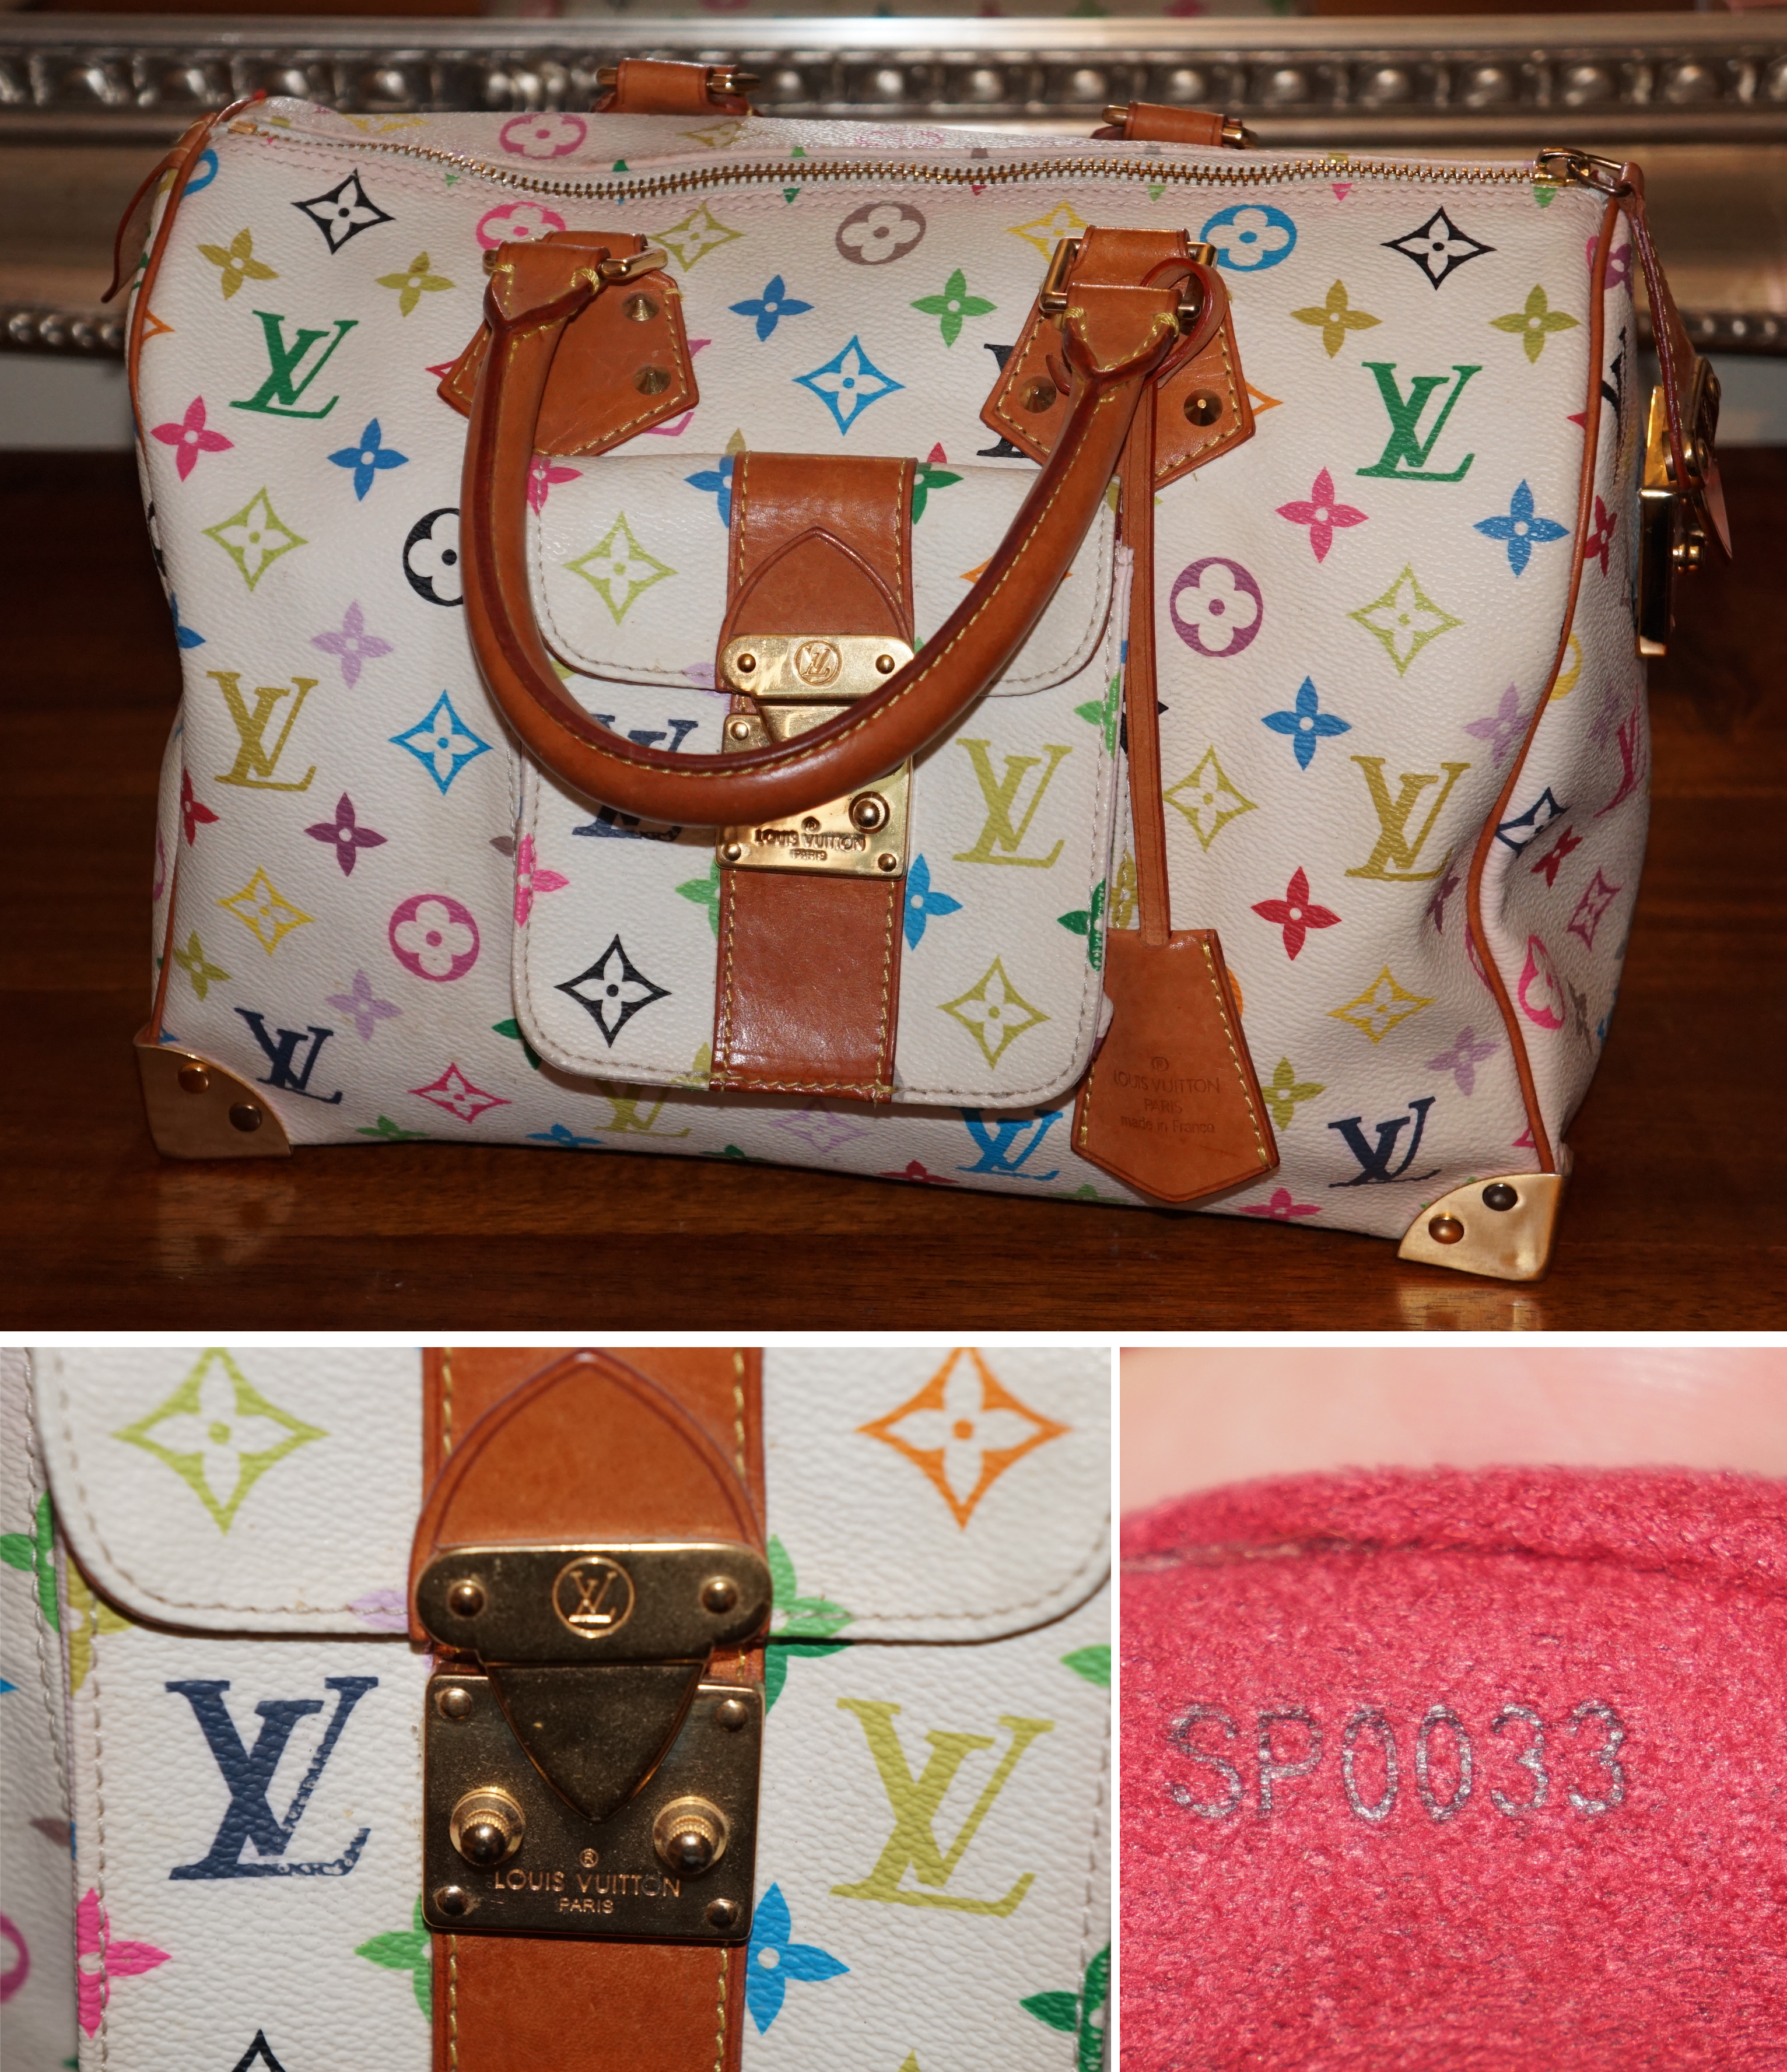 d897cbb779e Commonly Faked Designer Goods  Louis Vuitton